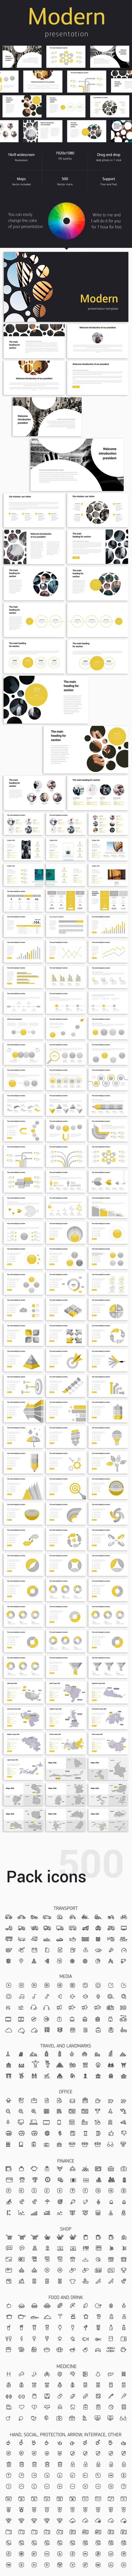 Modern Elegant Professional Powerpoint — Powerpoint PPTX #marketing #professional • Available here ➝ https://graphicriver.net/item/modern-elegant-professional-powerpoint/21041285?ref=pxcr